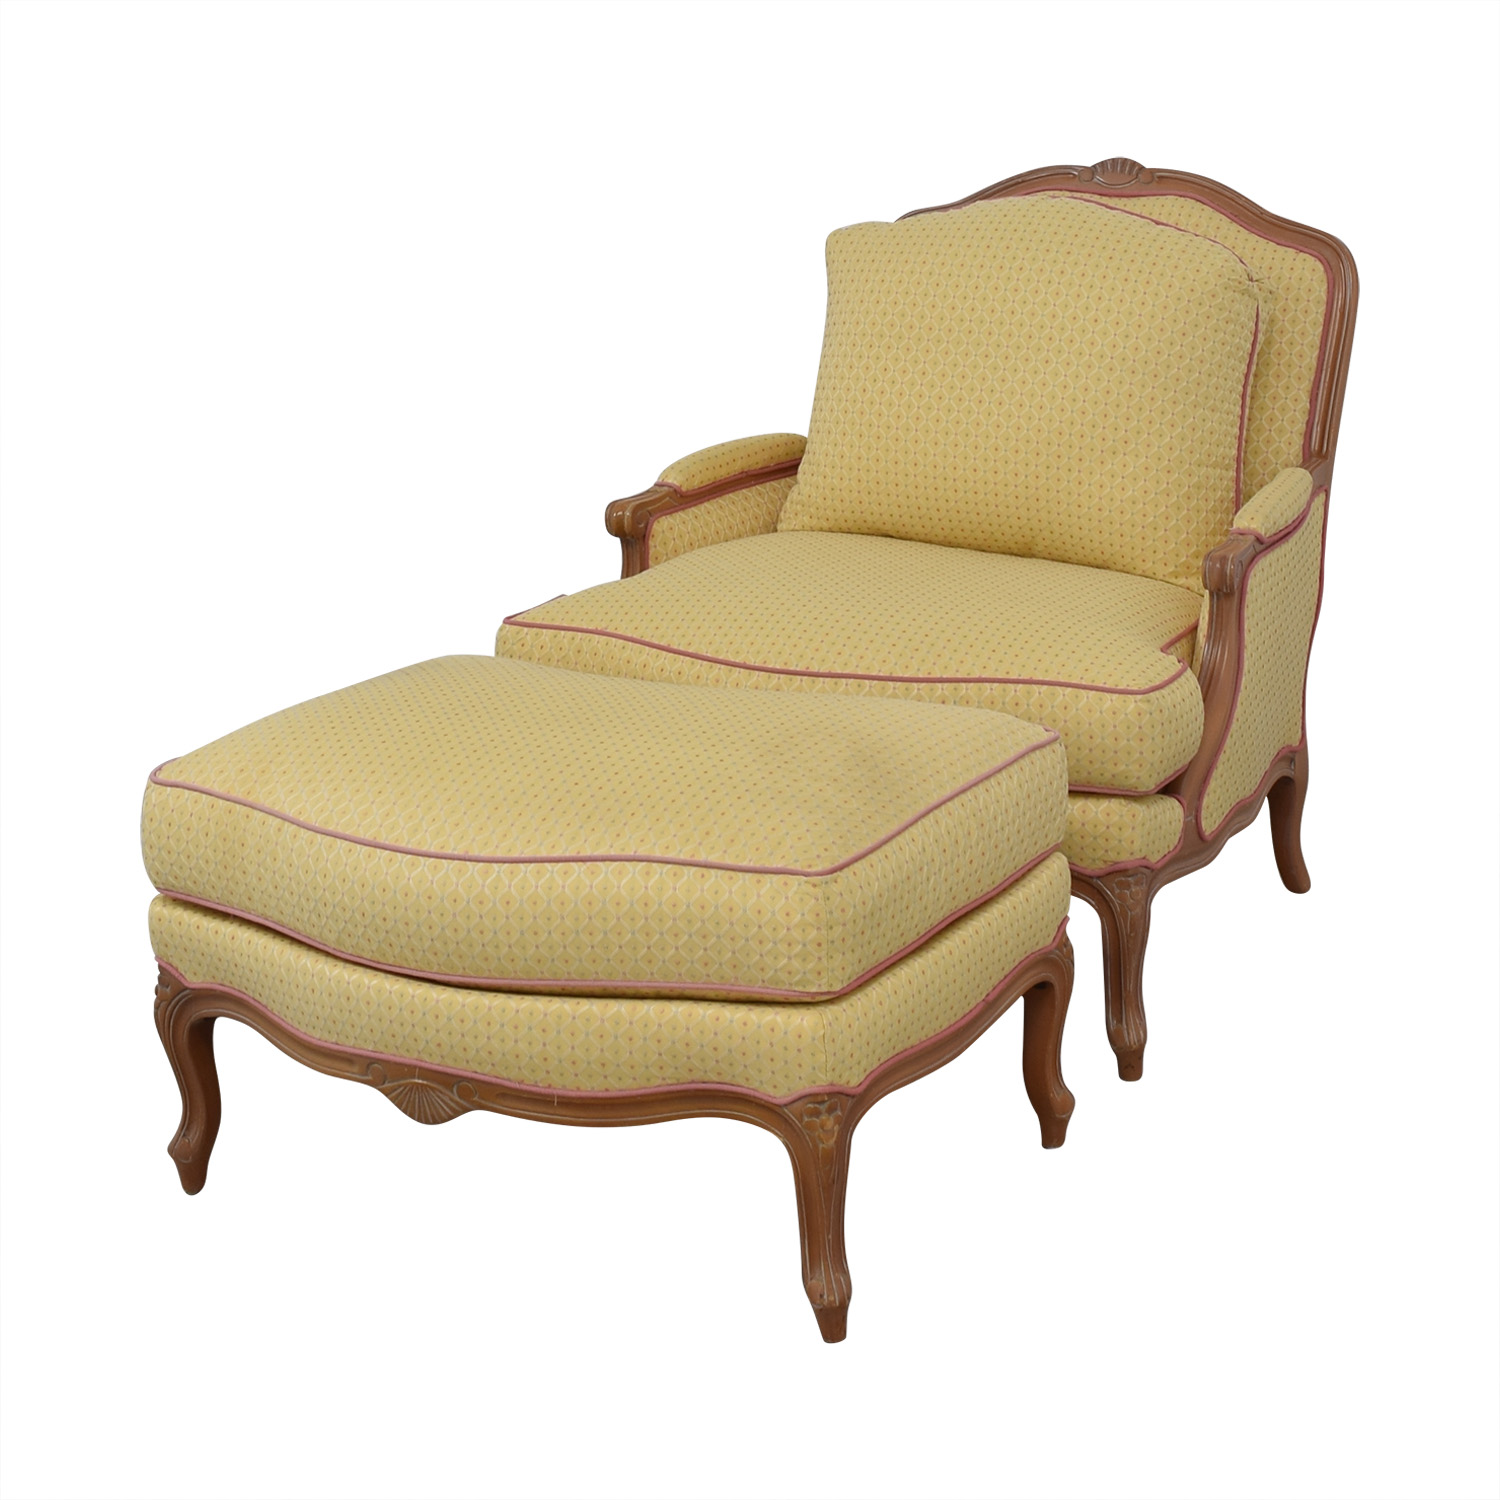 Ashley Manor Ashley Manor Chair with Ottoman dimensions